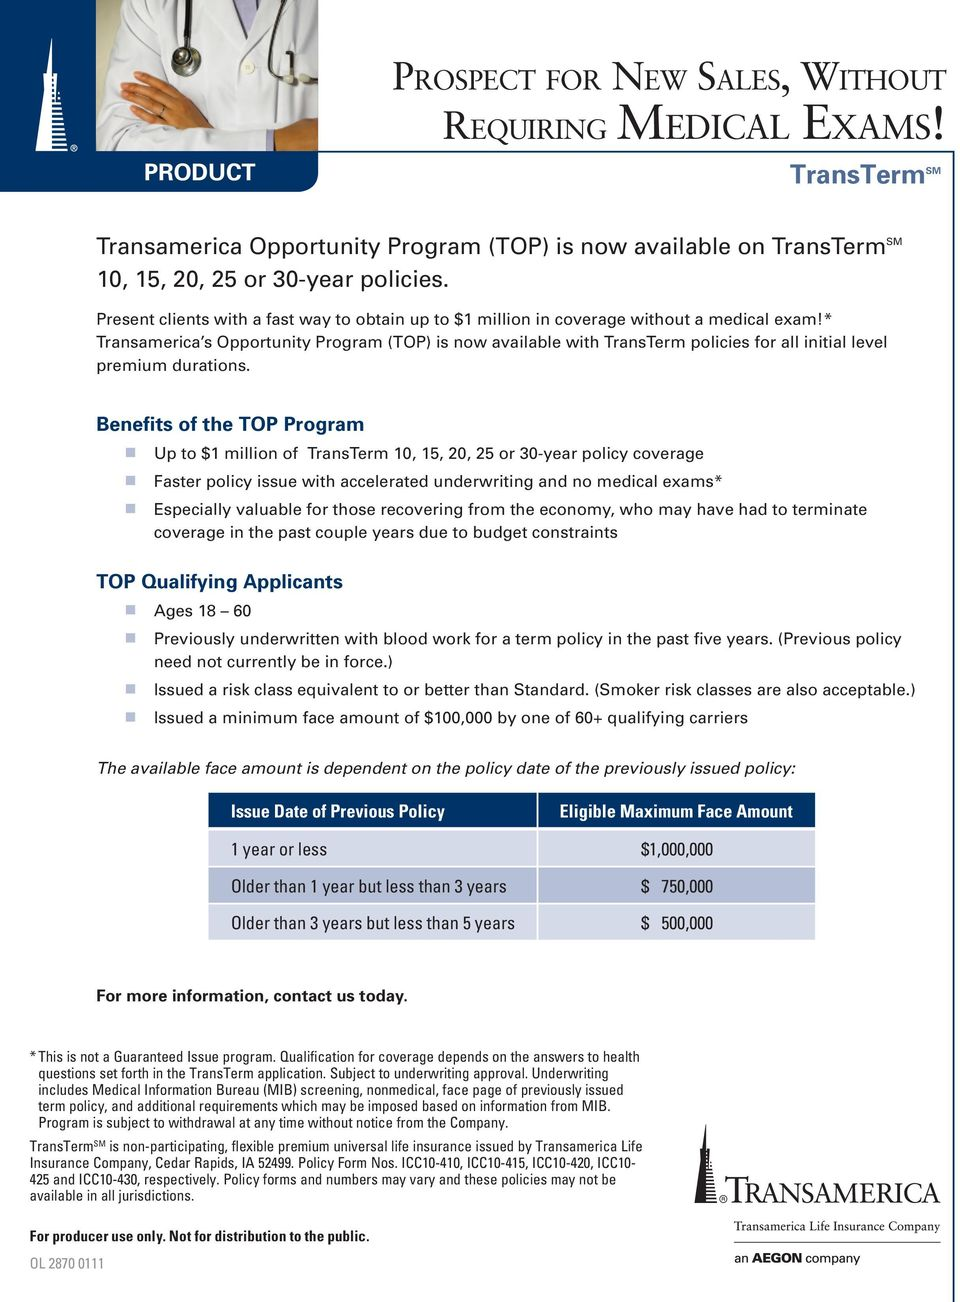 * Transamerica s Opportunity Program (TOP) is now available with TransTerm policies for all initial level premium durations.